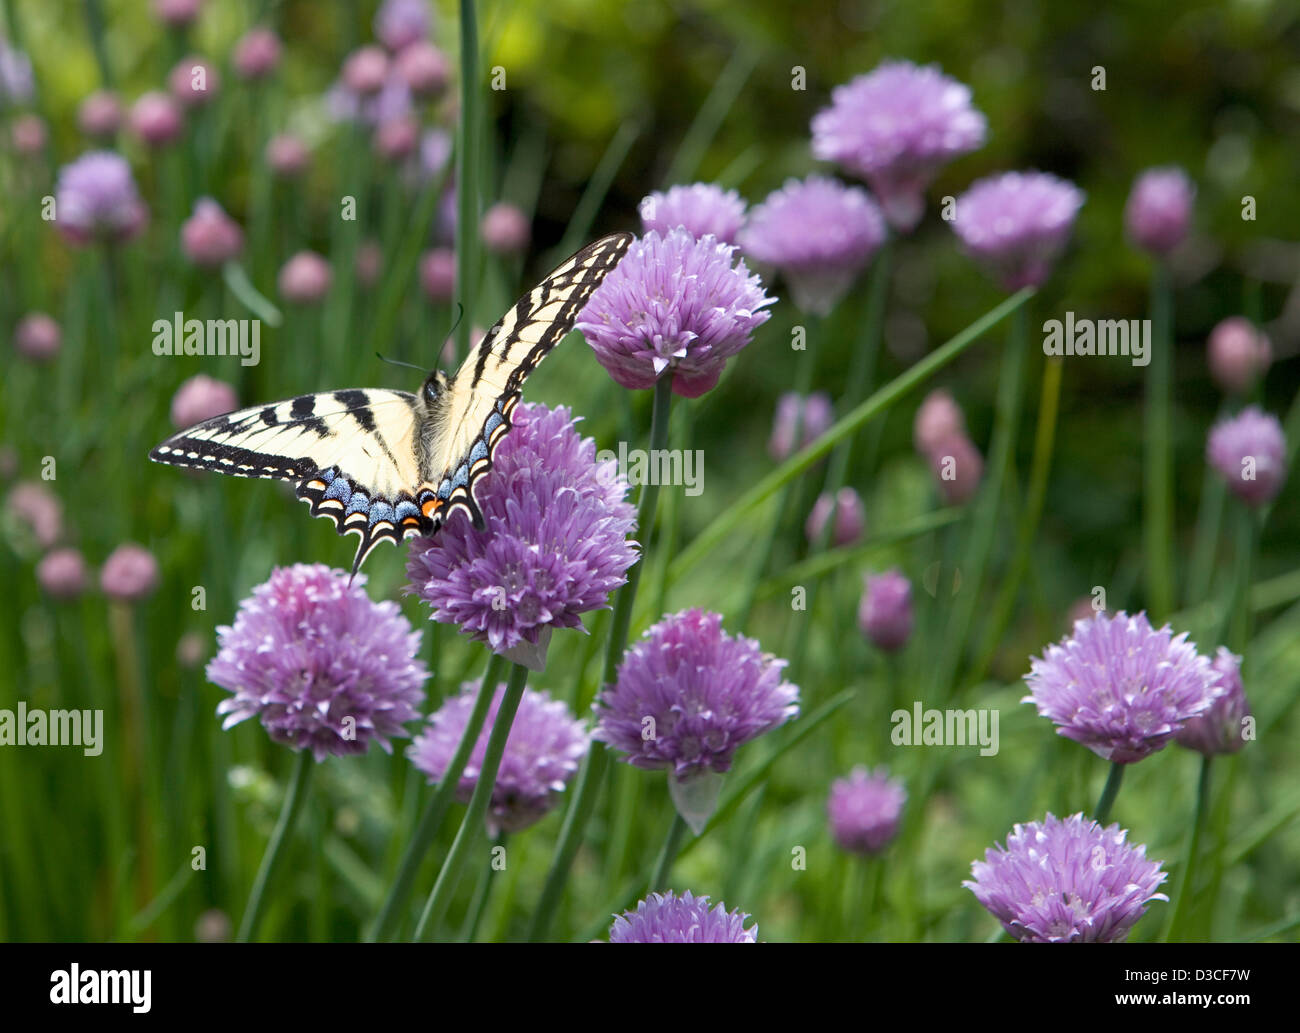 Blooming chives with a golden Monarch butterfly - Stock Image